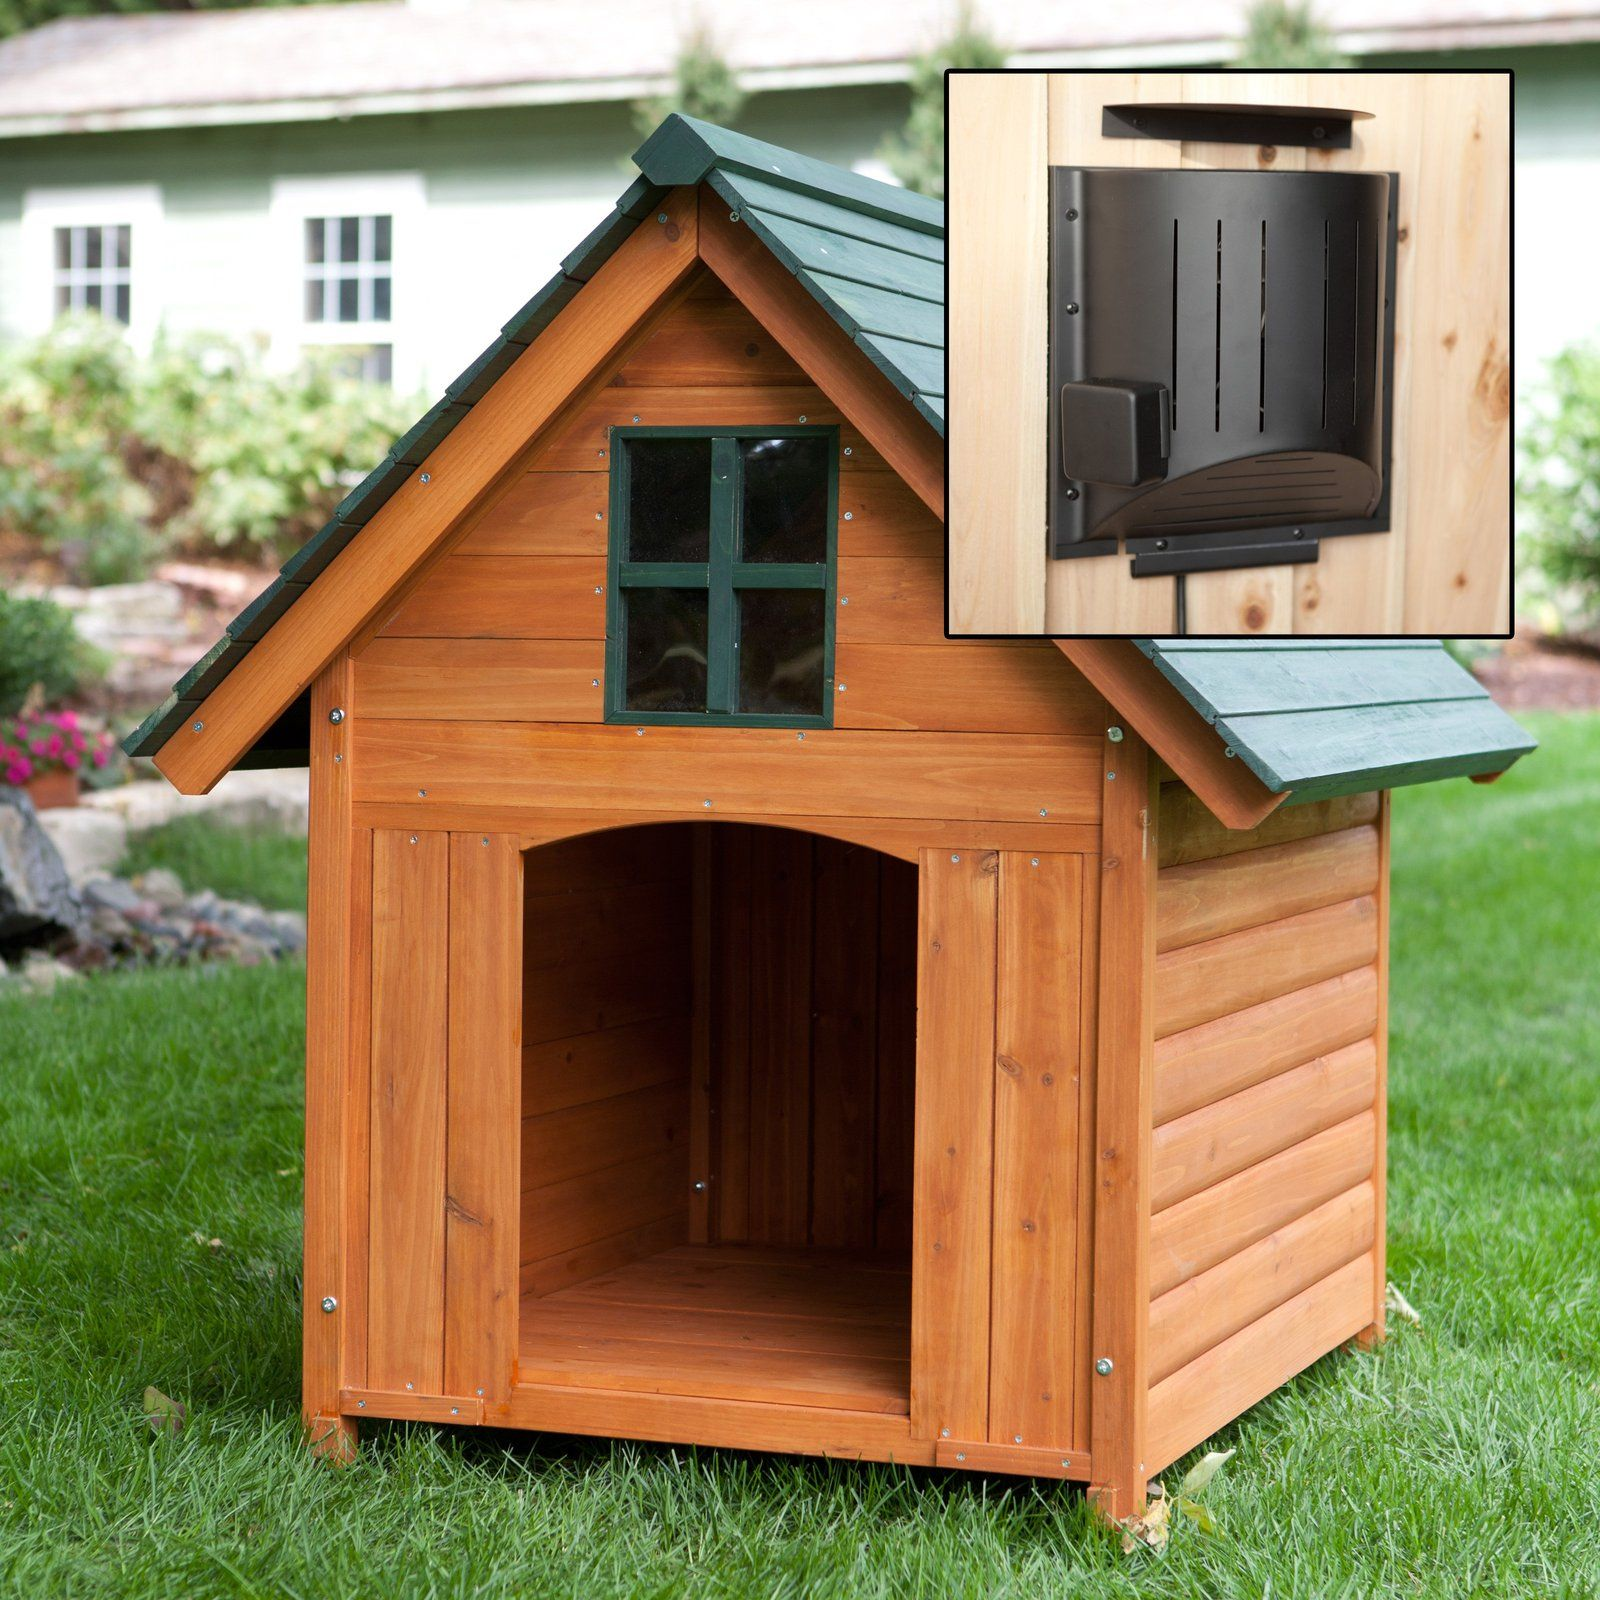 Home Design Ideas For Dogs:  Dog House Heated Pet Kennel Deluxe Rustic Wooden Large